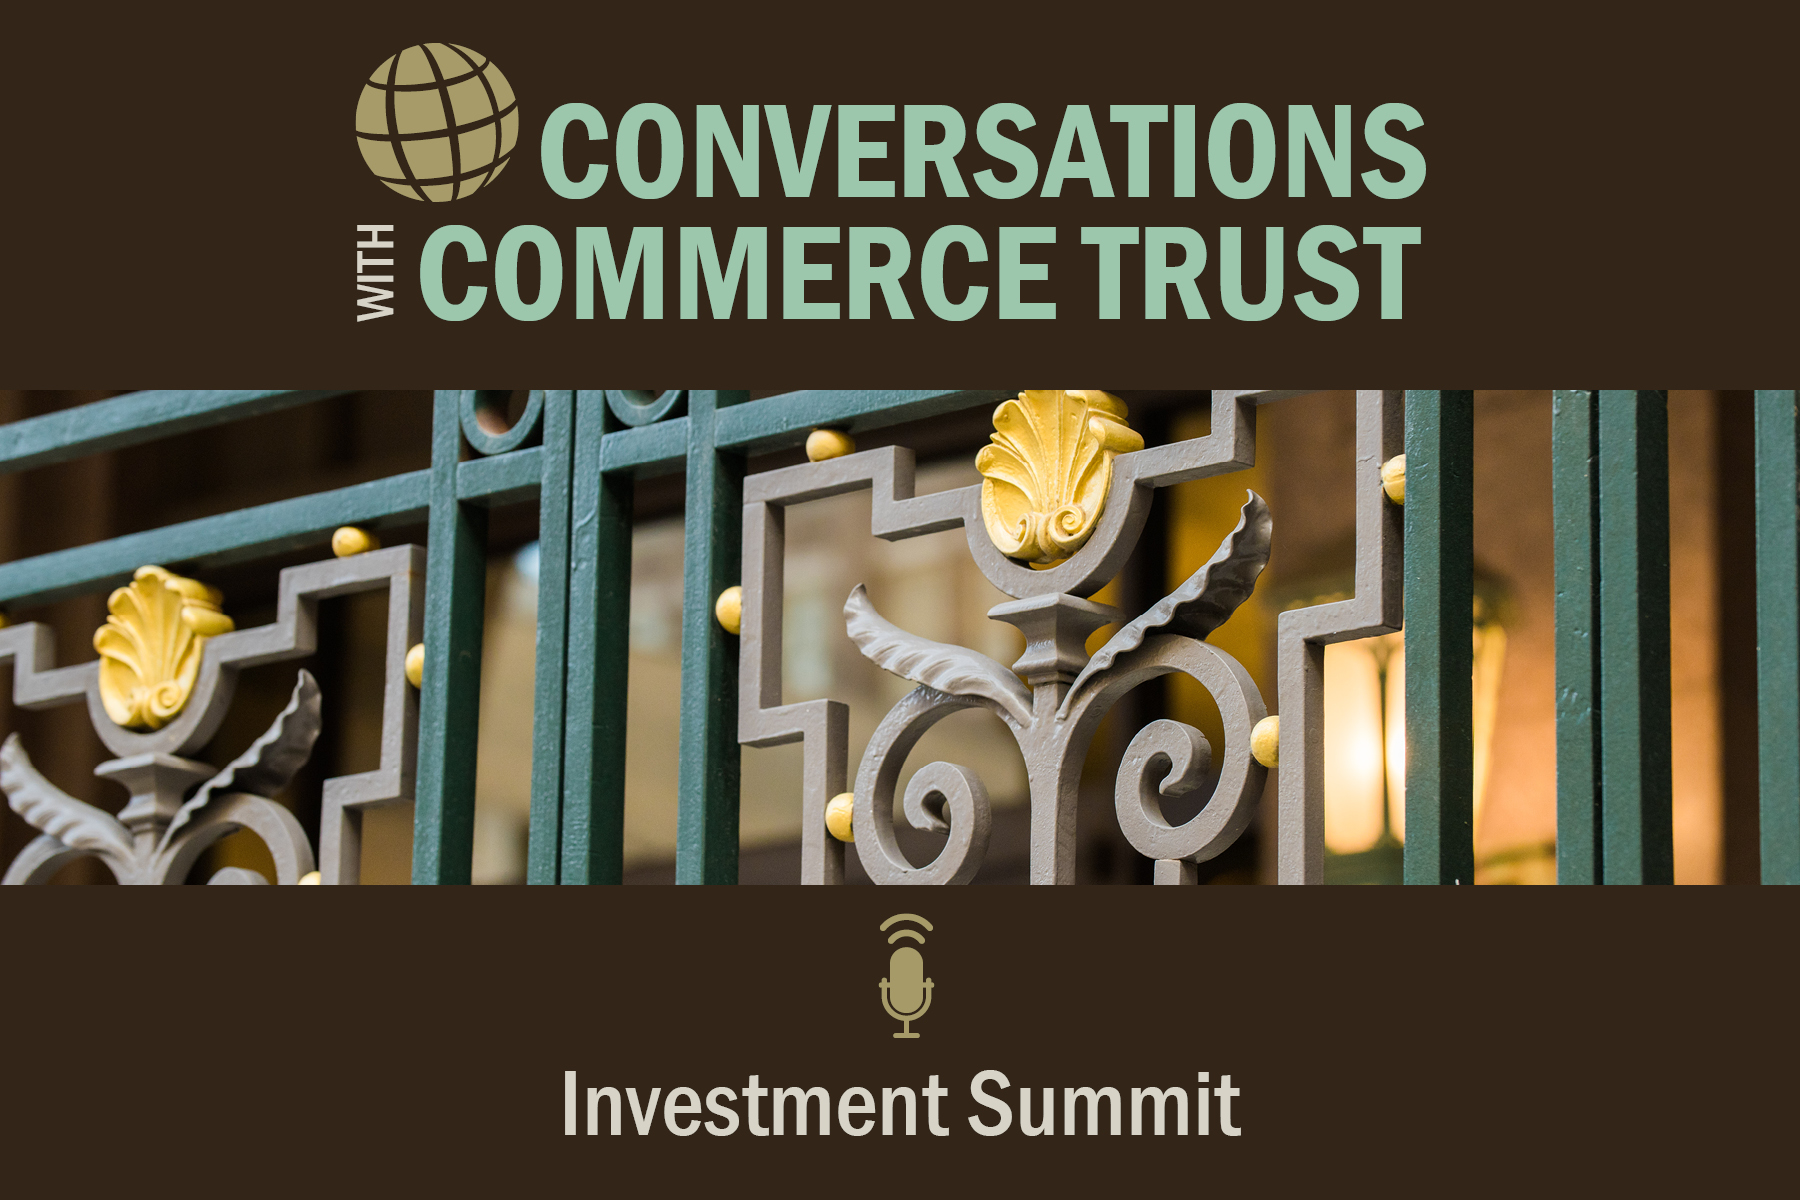 Conversations with Commerce Trust Investment Summit